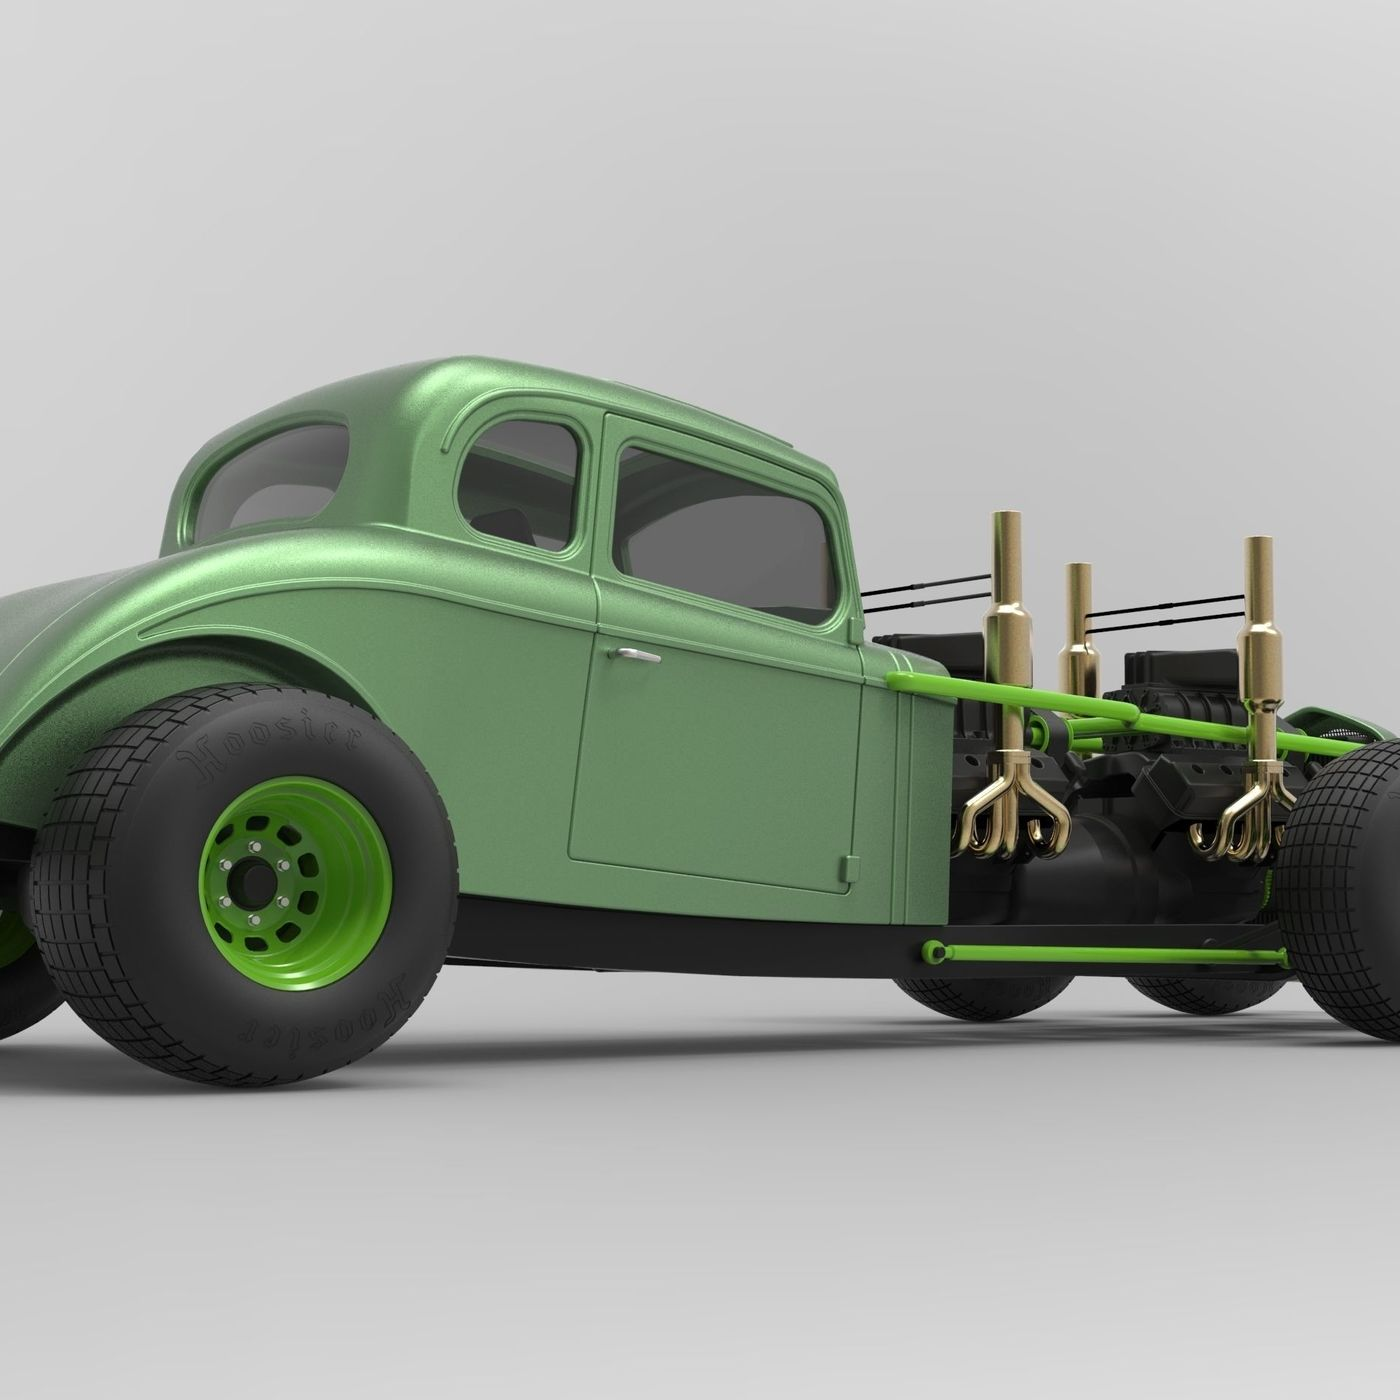 Hot rod six-wheeled